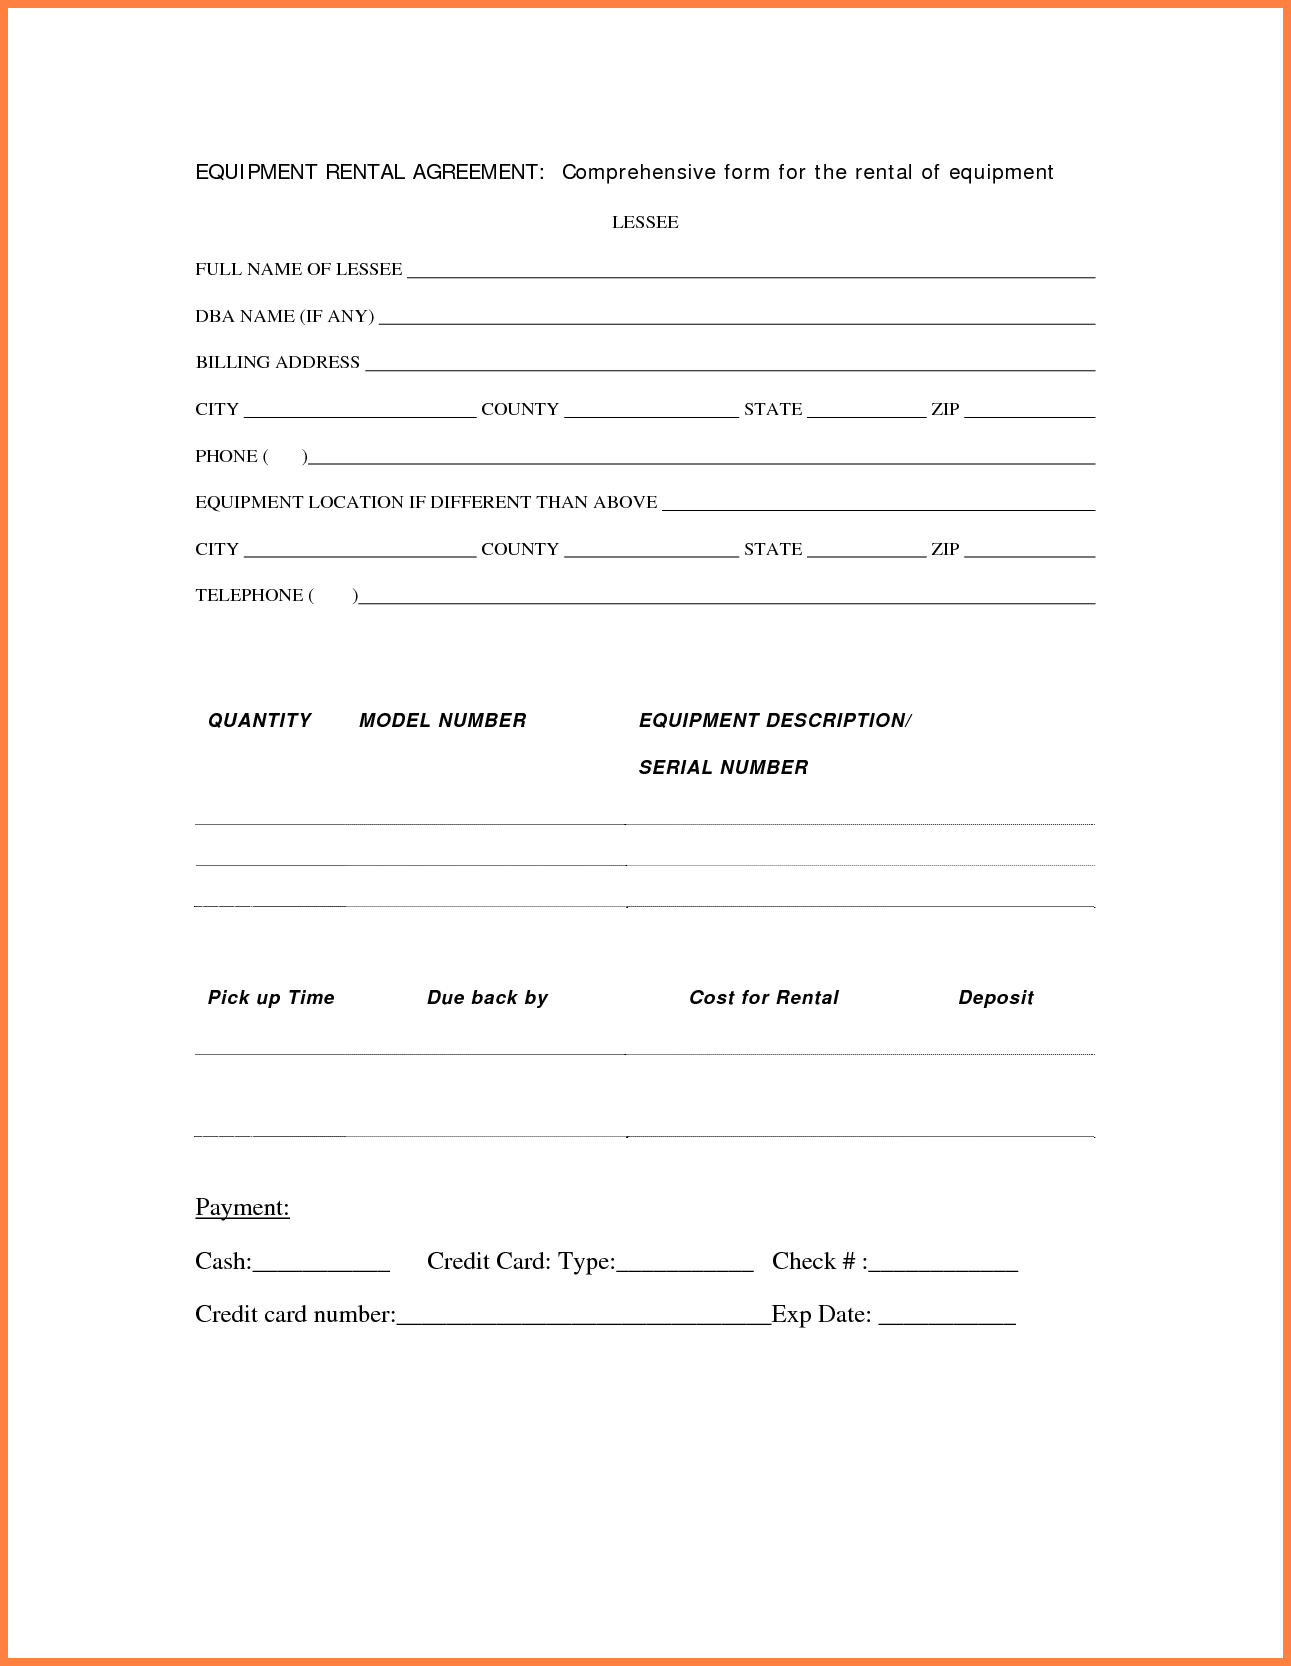 Contract Rental Agreement Template 003 Equipment Rental Agreement Template Contract Lease Form